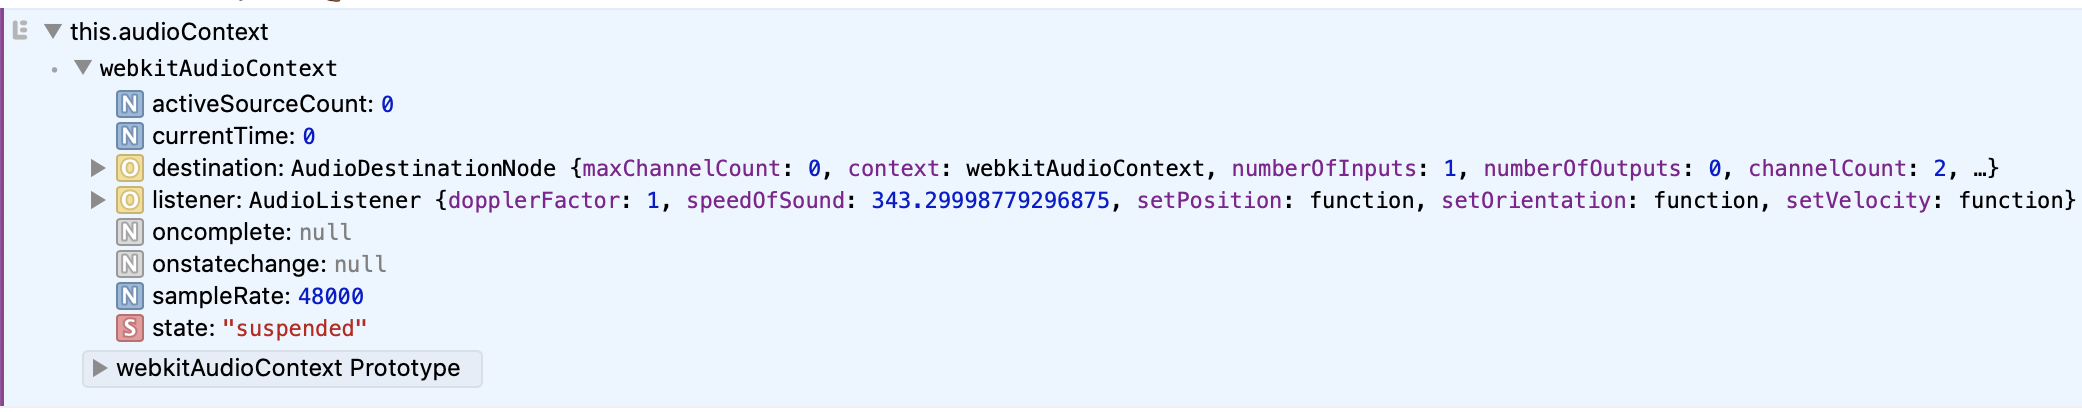 Dev console showing the output of logging this.audioContext. The state attribute is shown as suspended